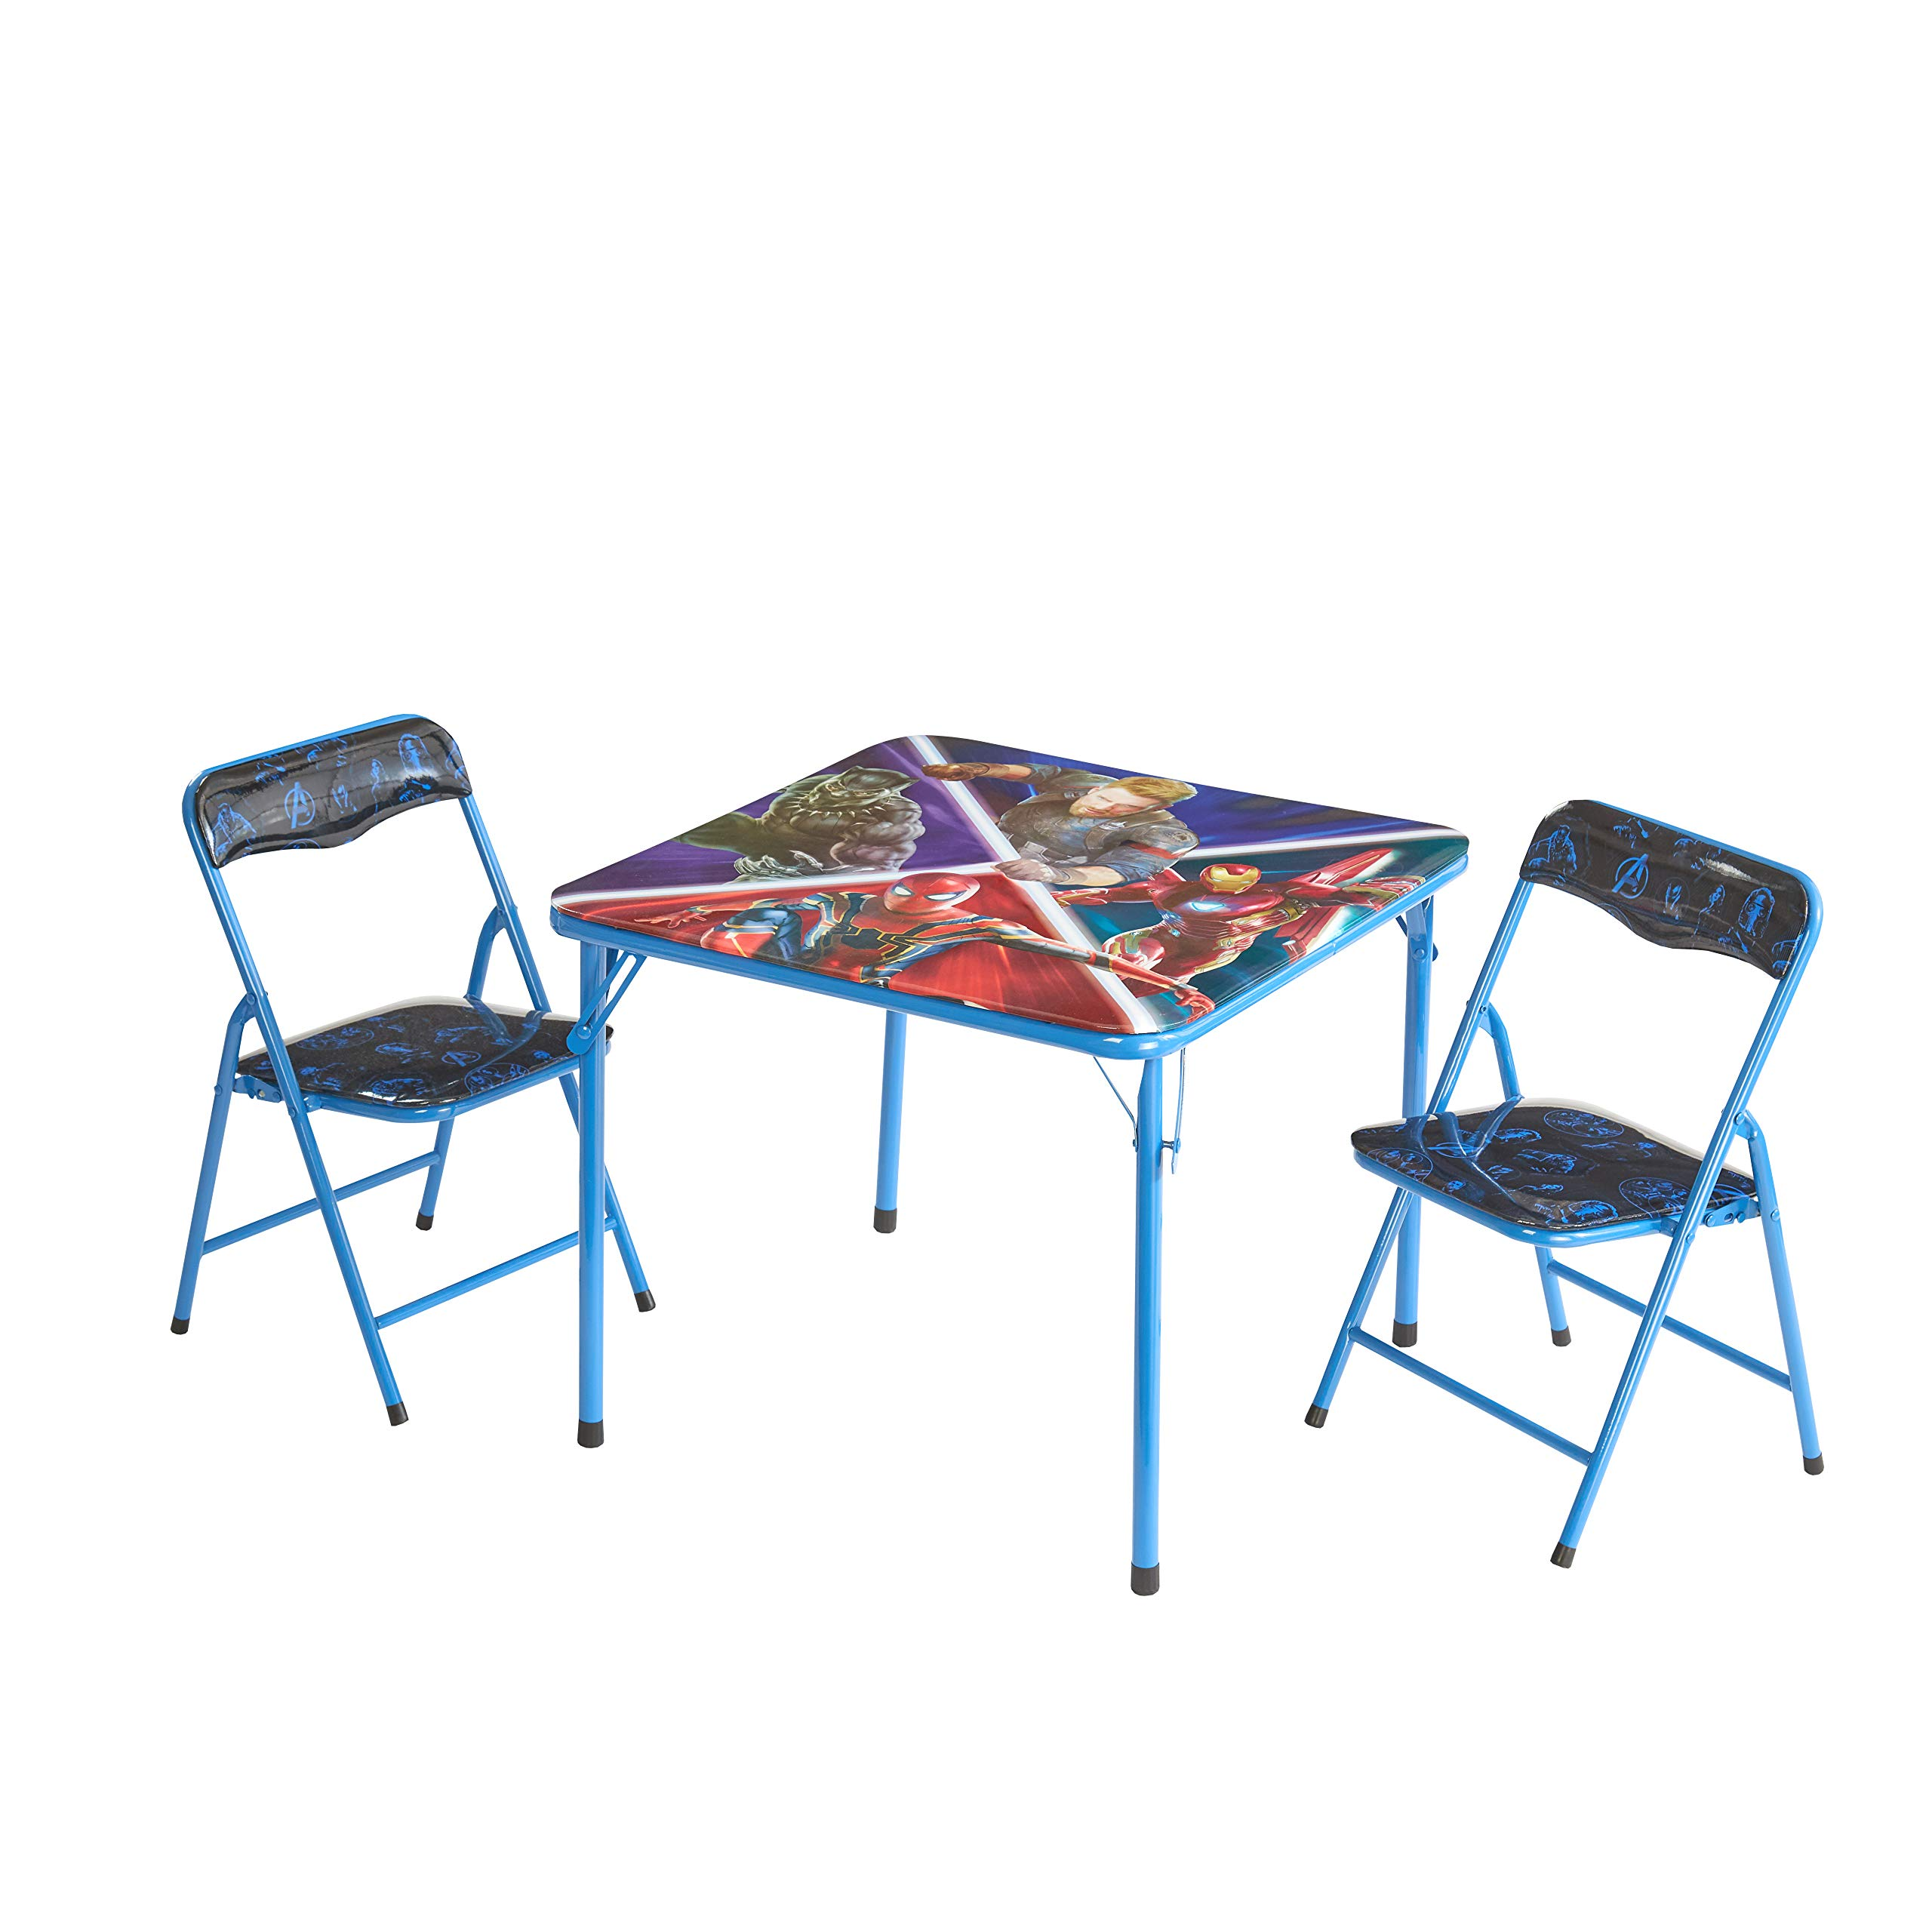 Marvel Avengers Infinity War 3 Pc Table & Chair Set, Multicolor by Marvel